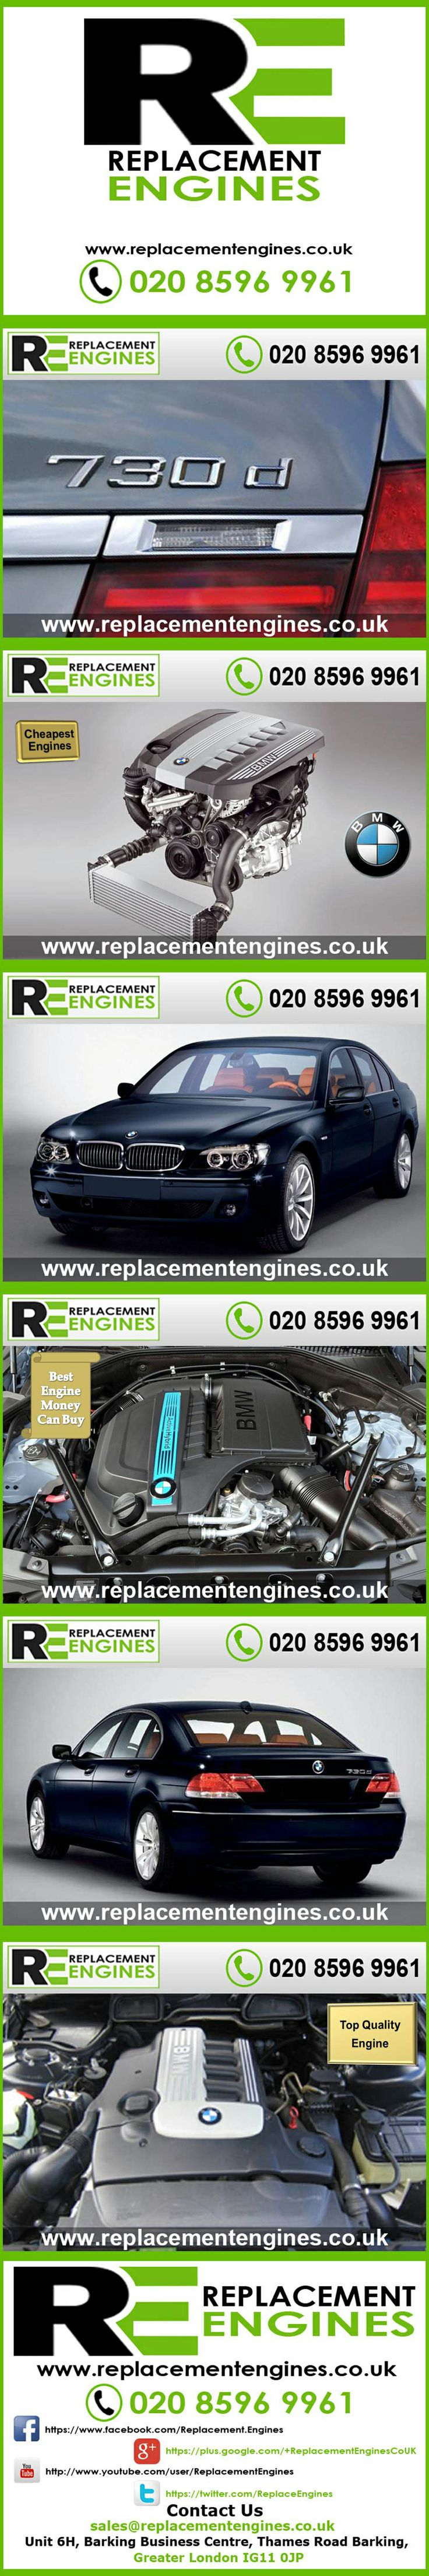 BMW 730d Engines for sale at the cheapest prices, we have low mileage used & reconditioned engines in stock now, ready to be delivered to anywhere in the UK or overseas, visit Replacement Engines website here.  http://www.replacementengines.co.uk/car-md.asp?part=all-bmw-730ddiesel-engine&mo_id=31176